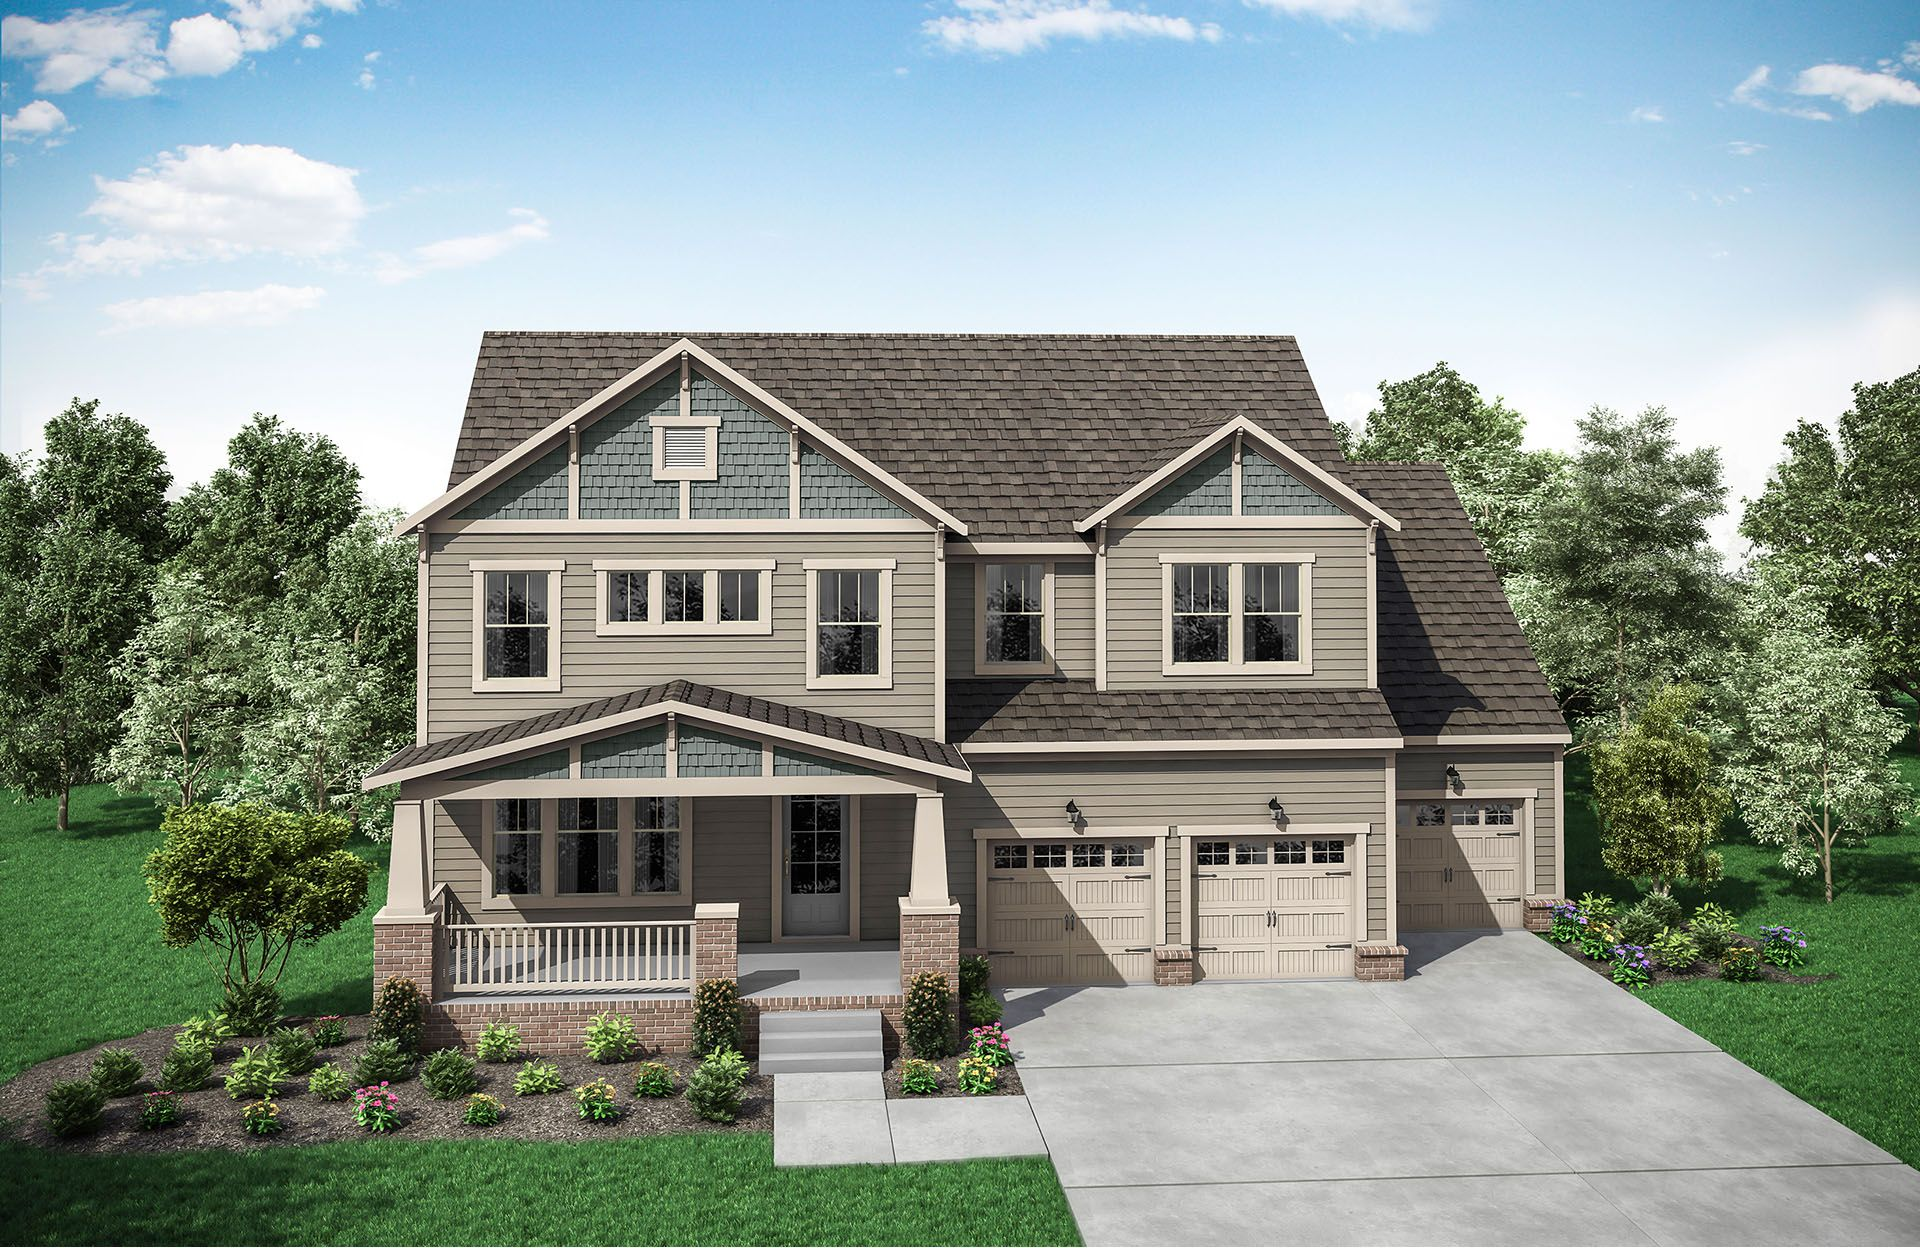 Single Family for Active at Baird Farms - Matthews Baird Farms Blvd Mount Juliet, Tennessee 37122 United States